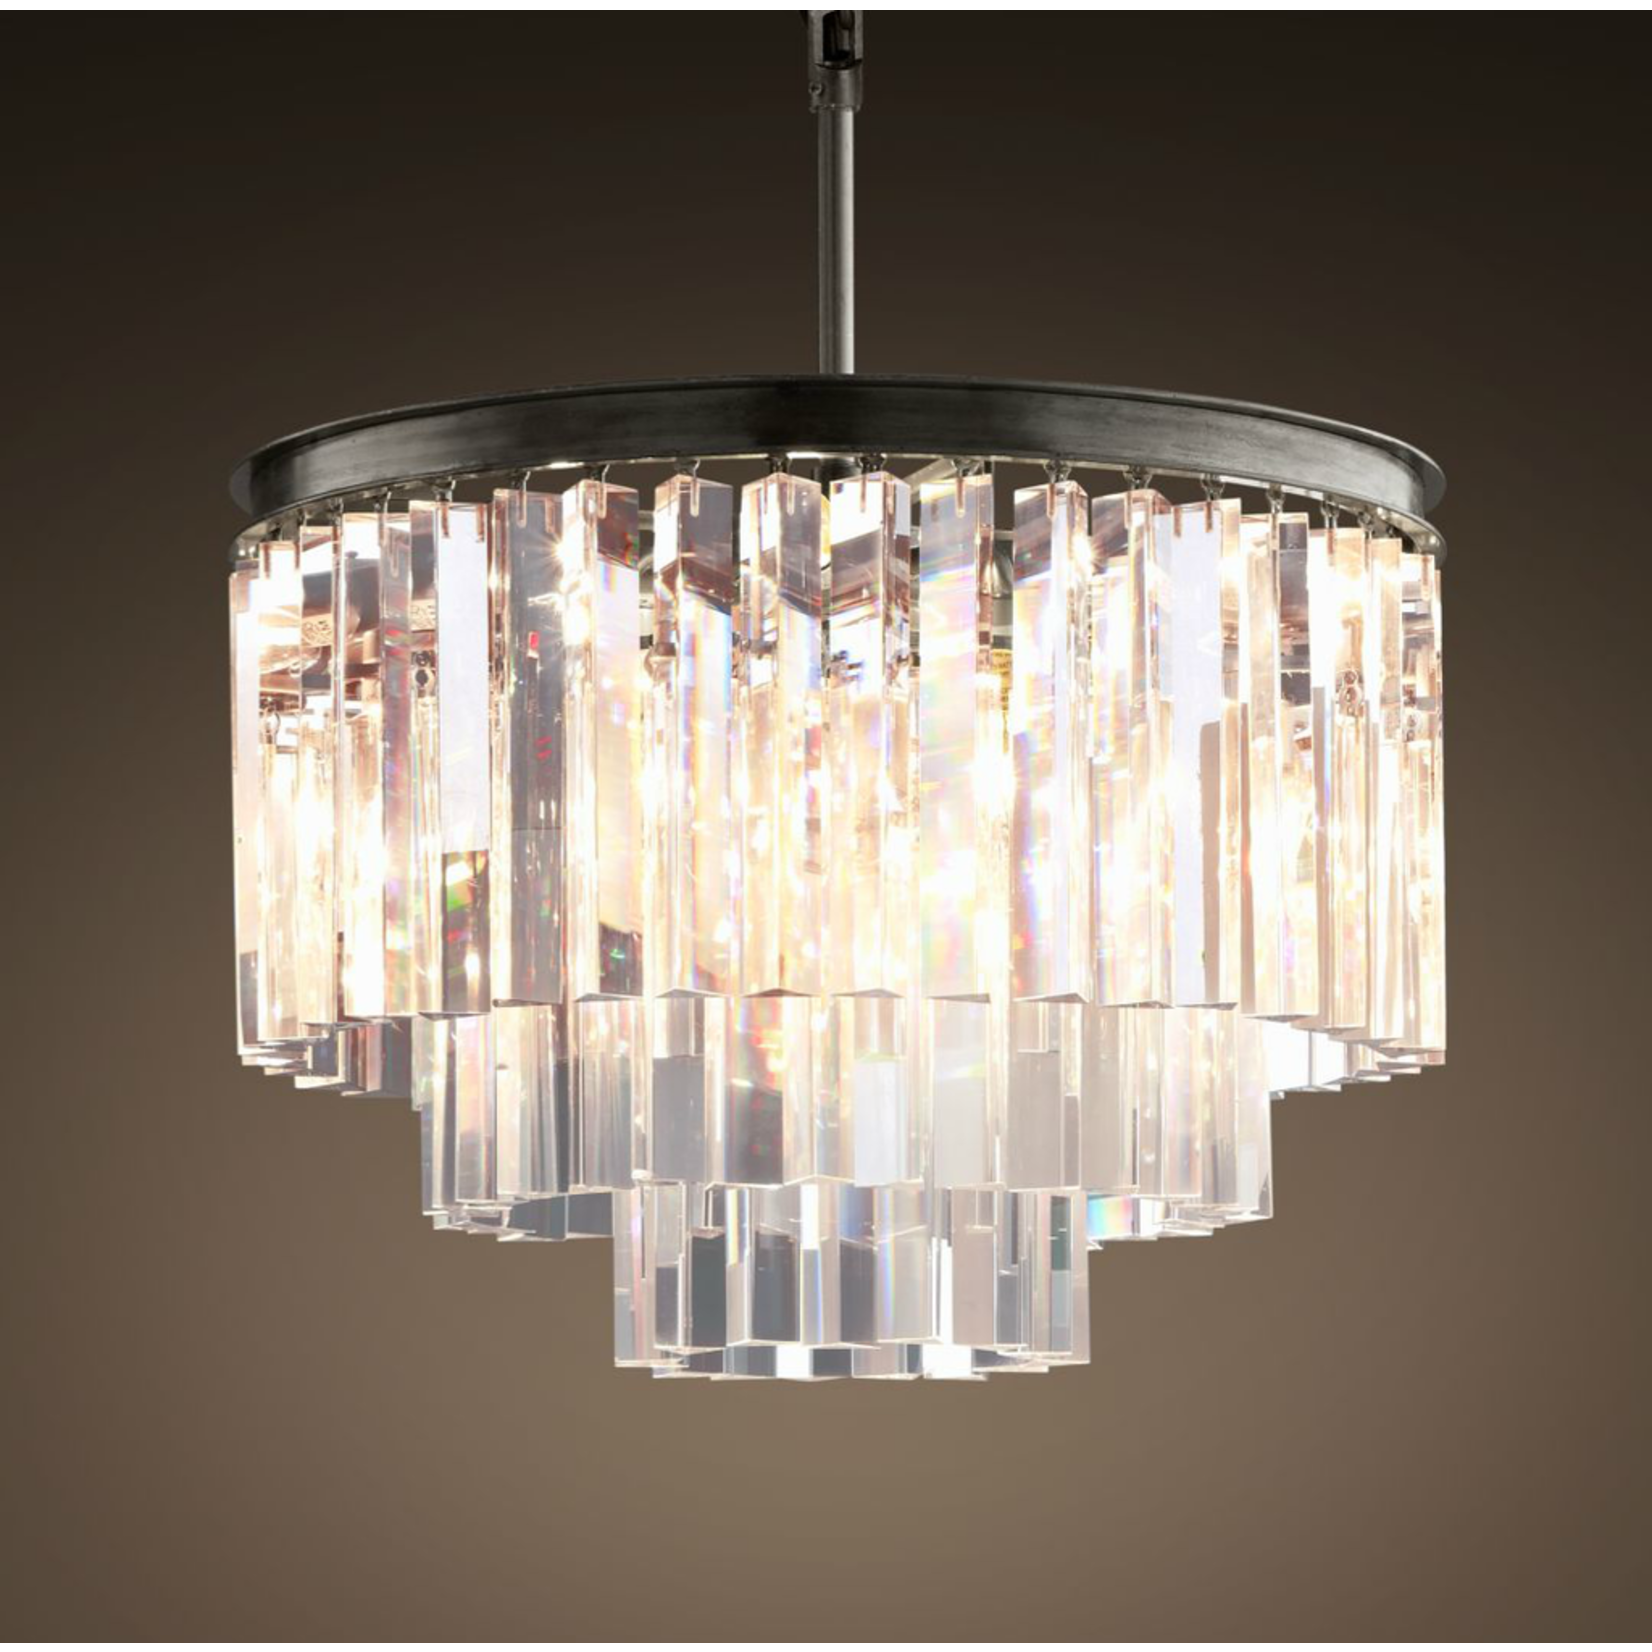 TIMOTHY OULTON ODEON SMALL 3 RING CHANDELIER